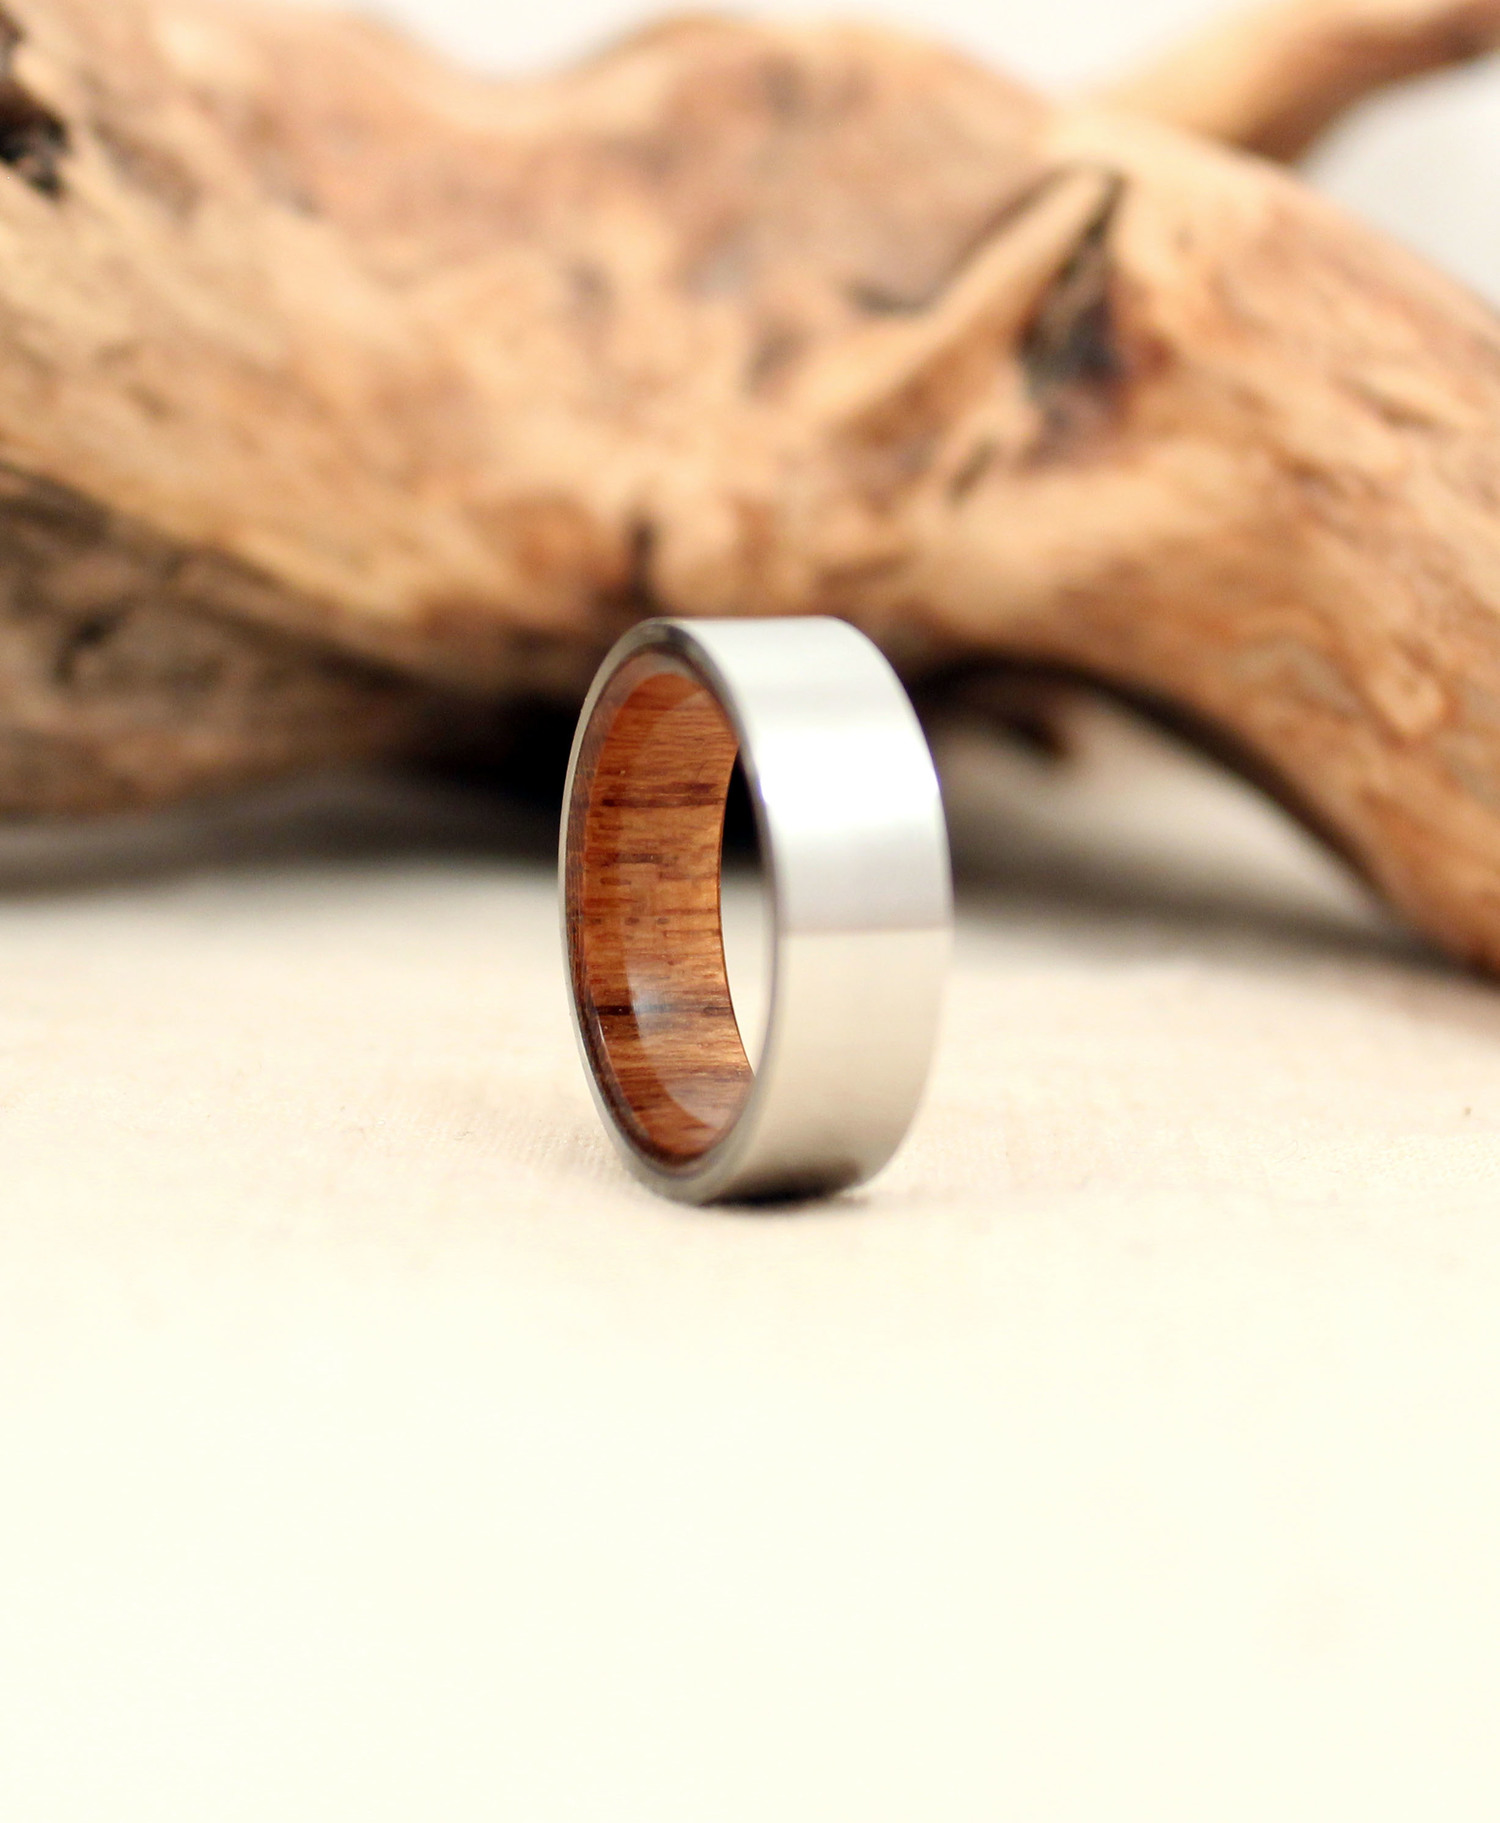 rings to teak wooden s fastest ring matt workshop her basement jewelry heart way